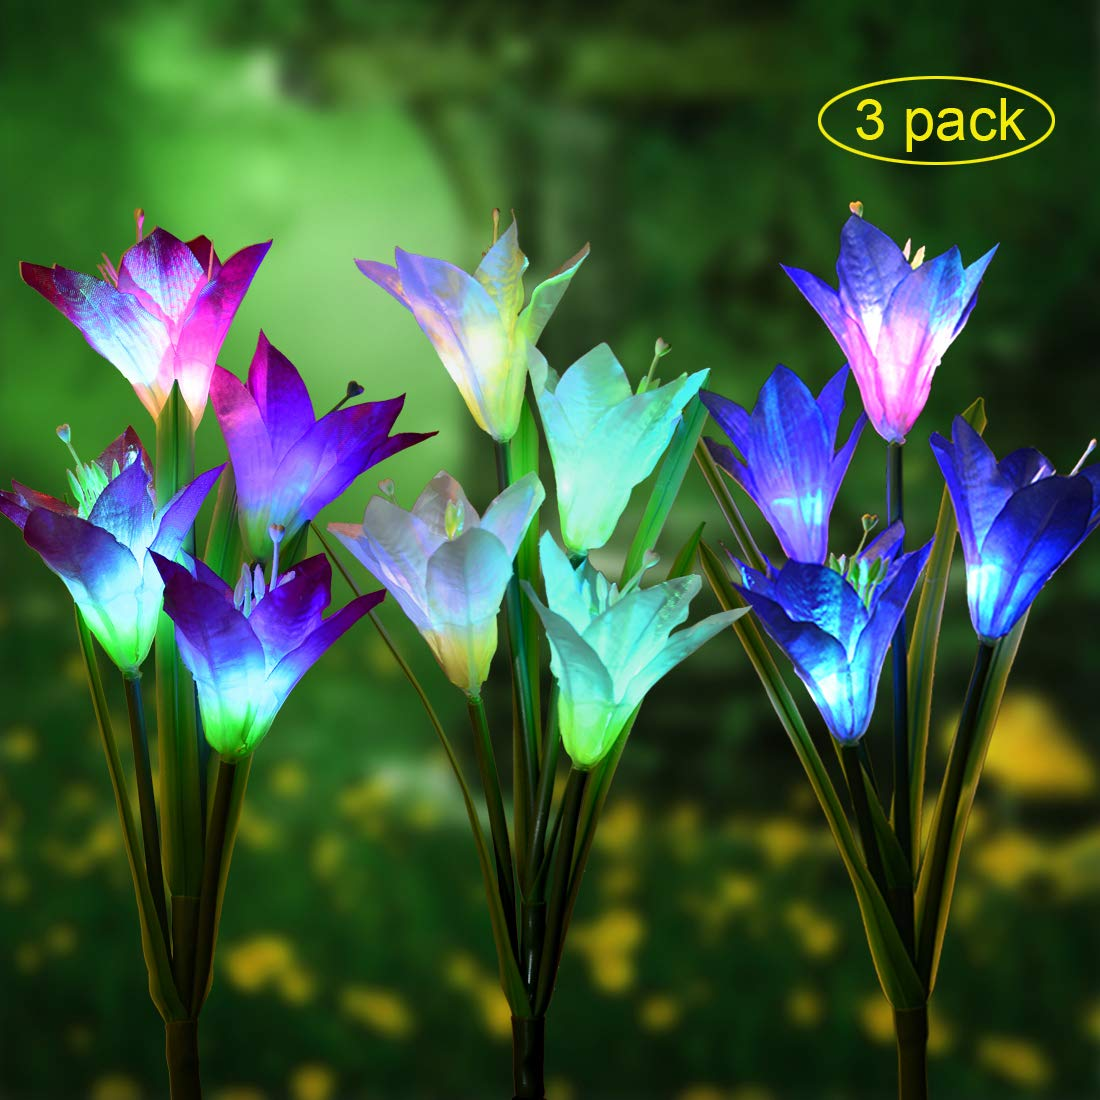 Outdoor Solar Garden Stake Lights - 3 Pack Eastred Solar Powered Lights with 12 Lily Flower, Multi-Color Changing LED Solar Stake Lights for Garden, Patio, Backyard (Bule,Purple and White)